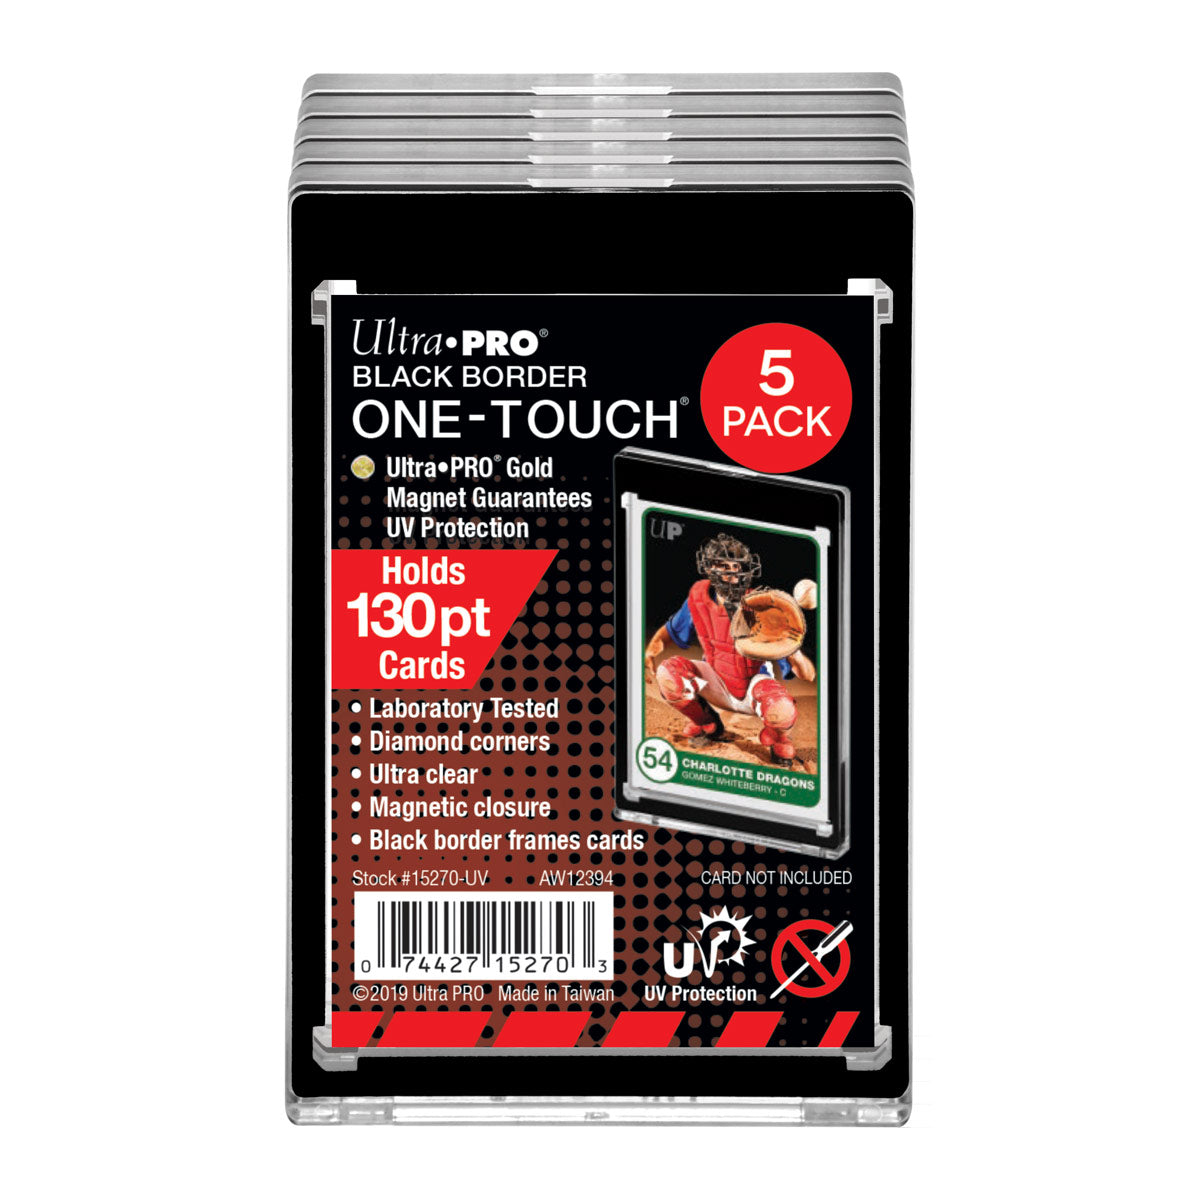 130pt Black Border One Touch Magnetic 5pack